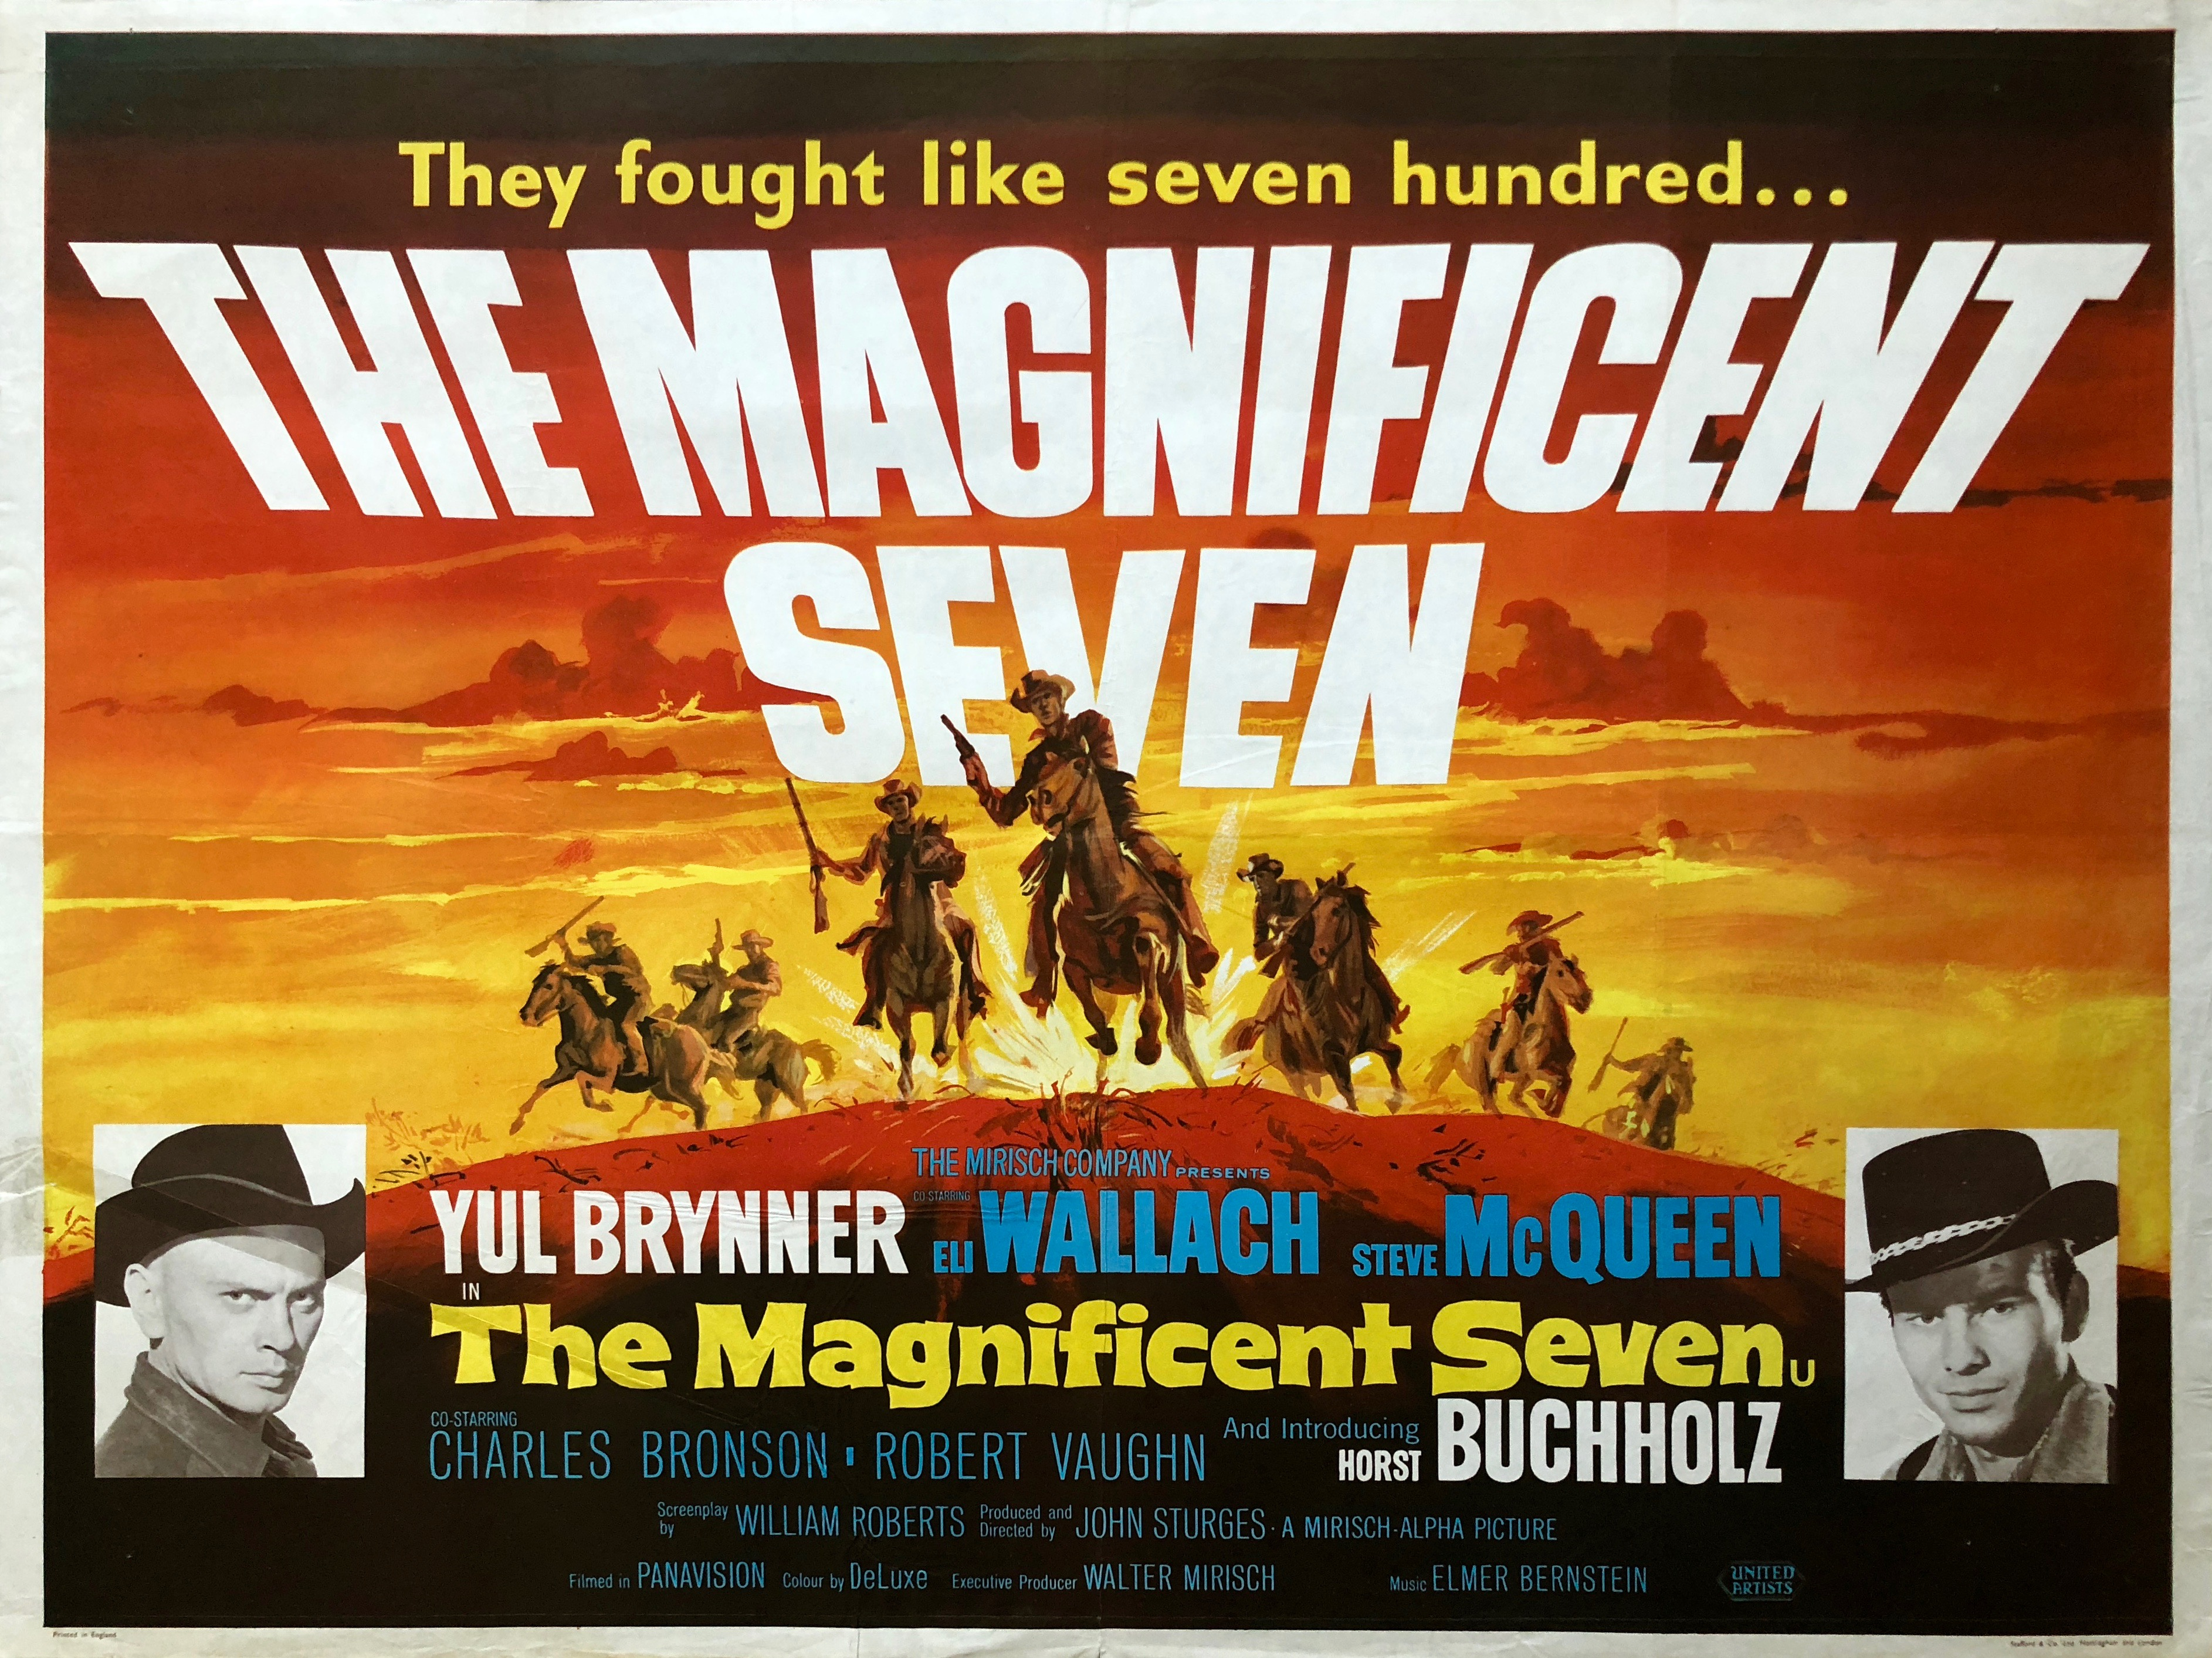 The Magnificent Seven Movie Poster - Vintage Movie Posters